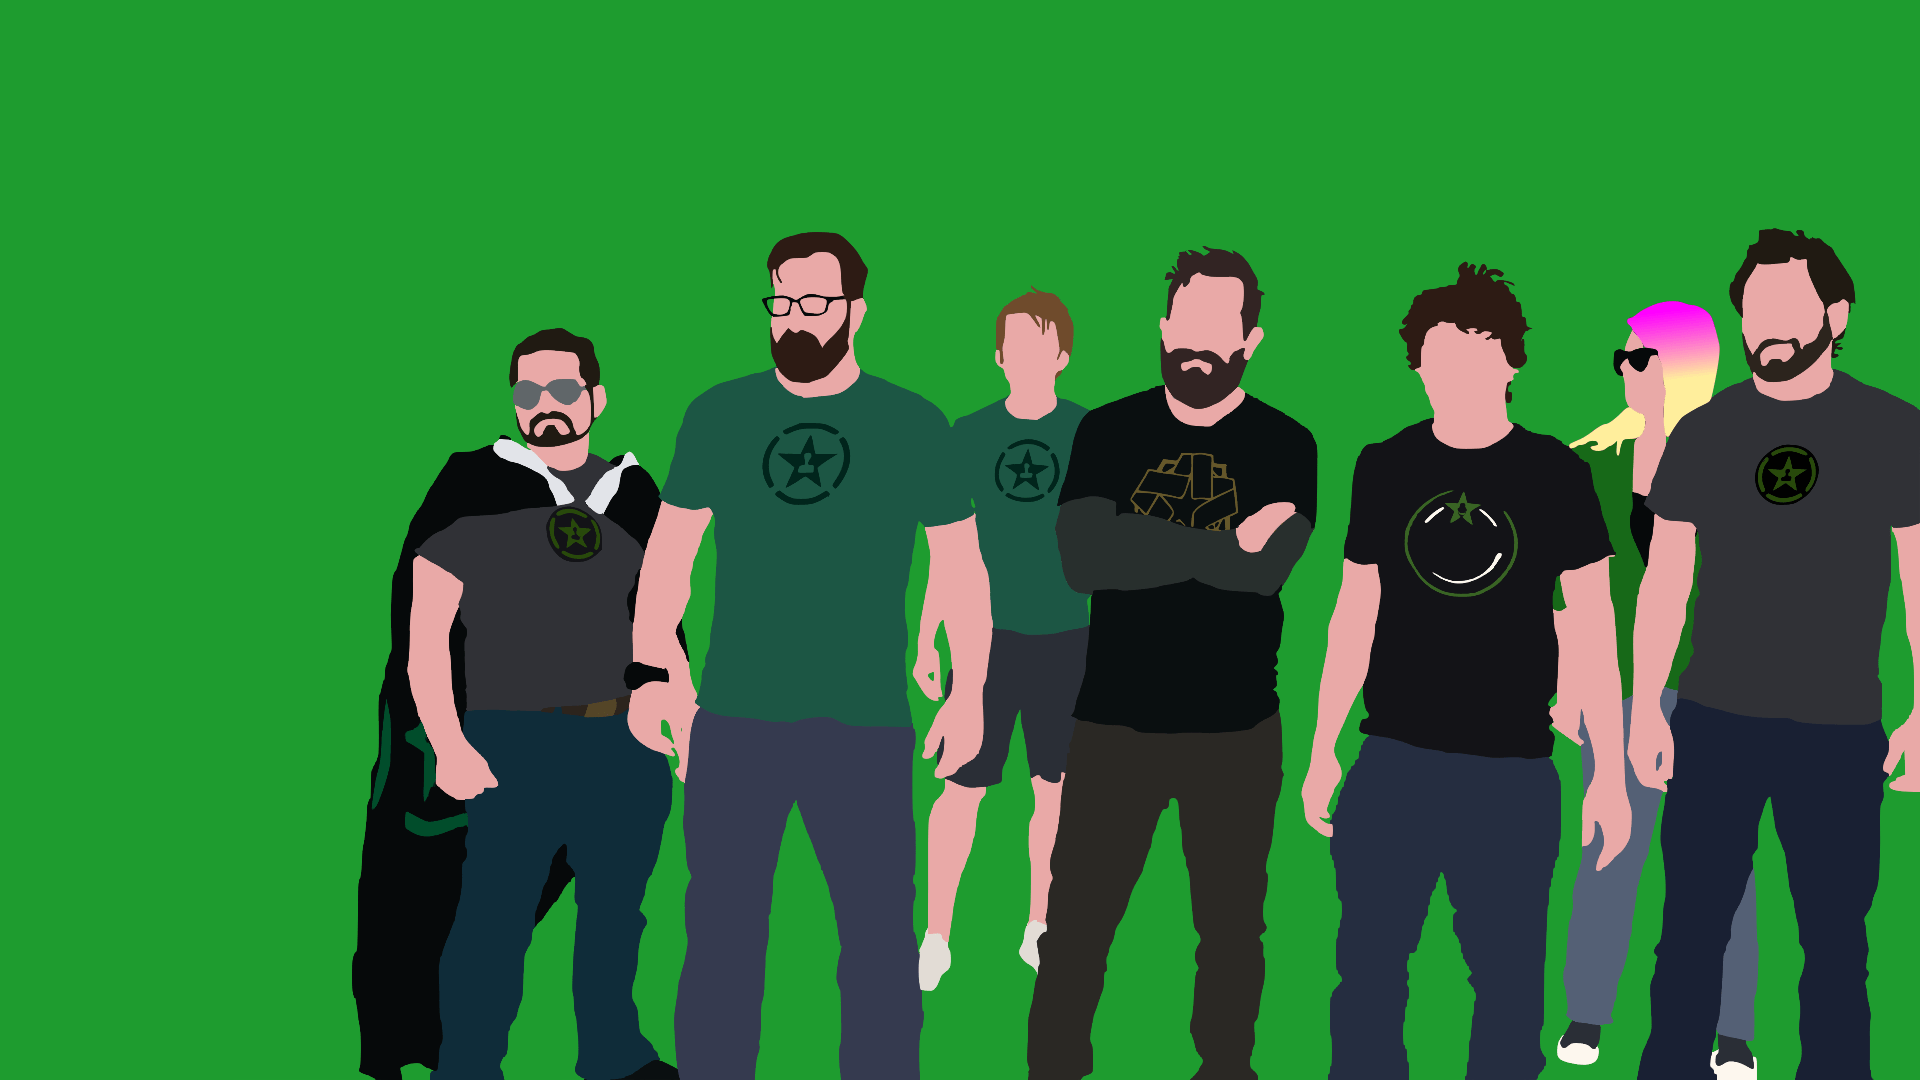 What Type Of Microphone Does Achievement Hunter Use Vg